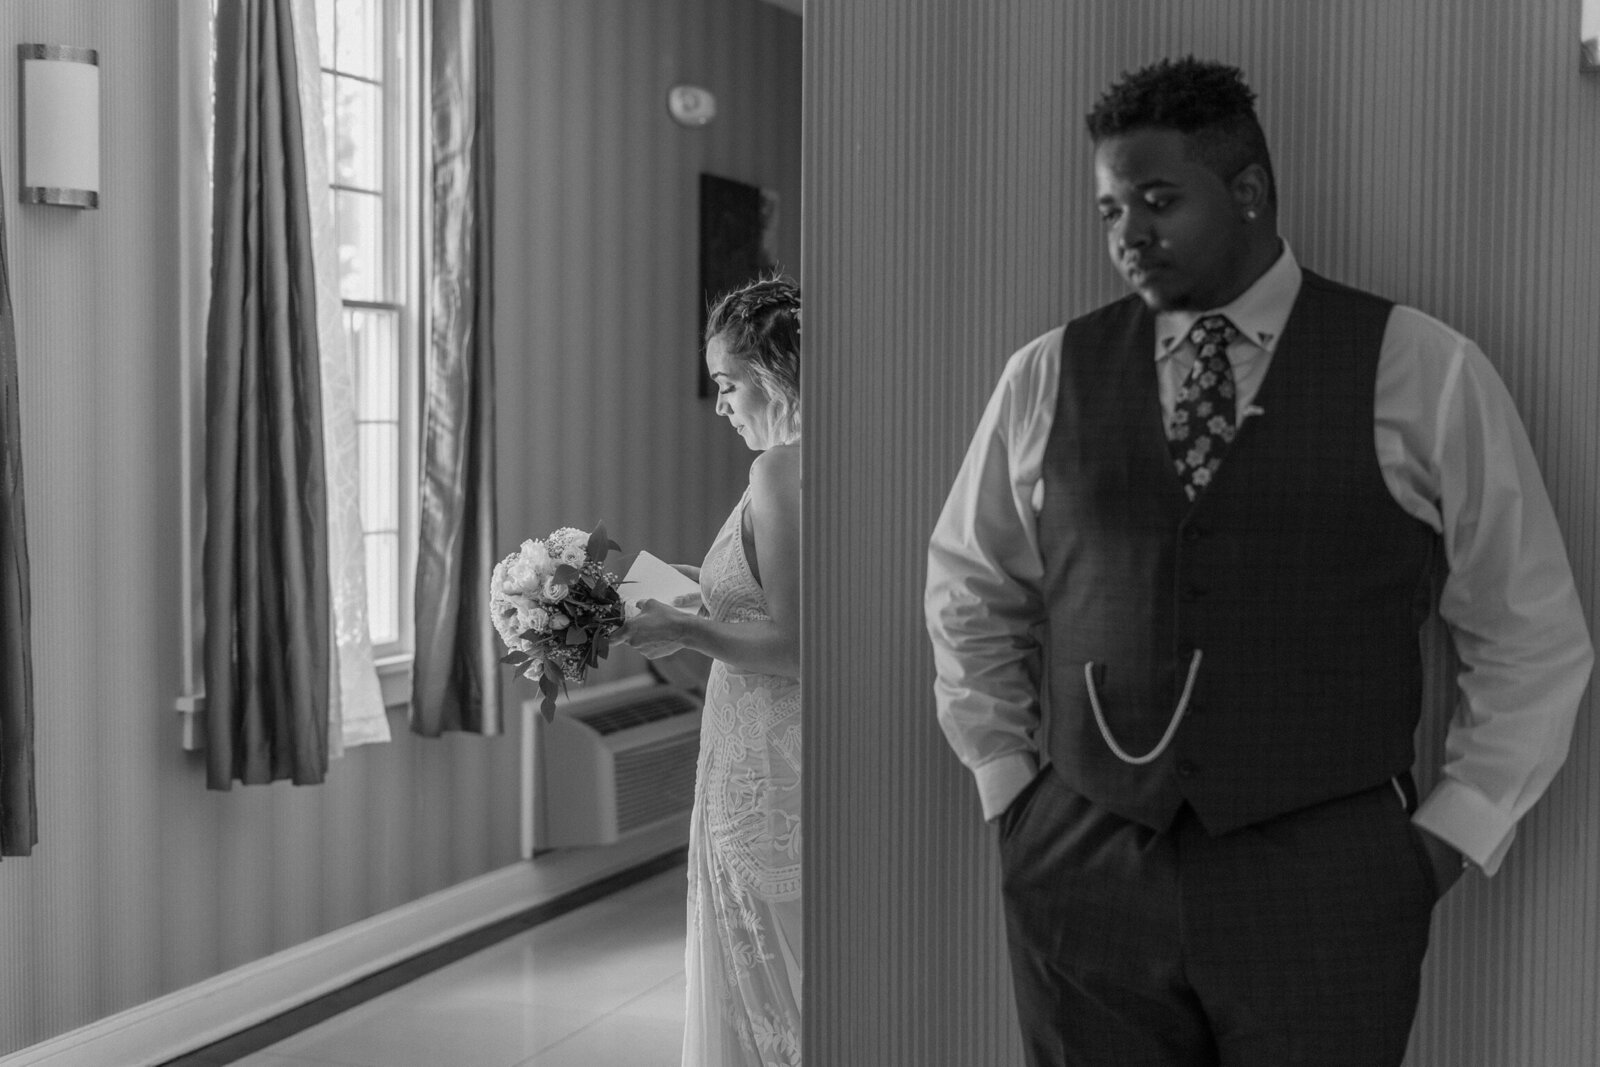 Weddings by Regina Marie; photo by Cate Barry Photography